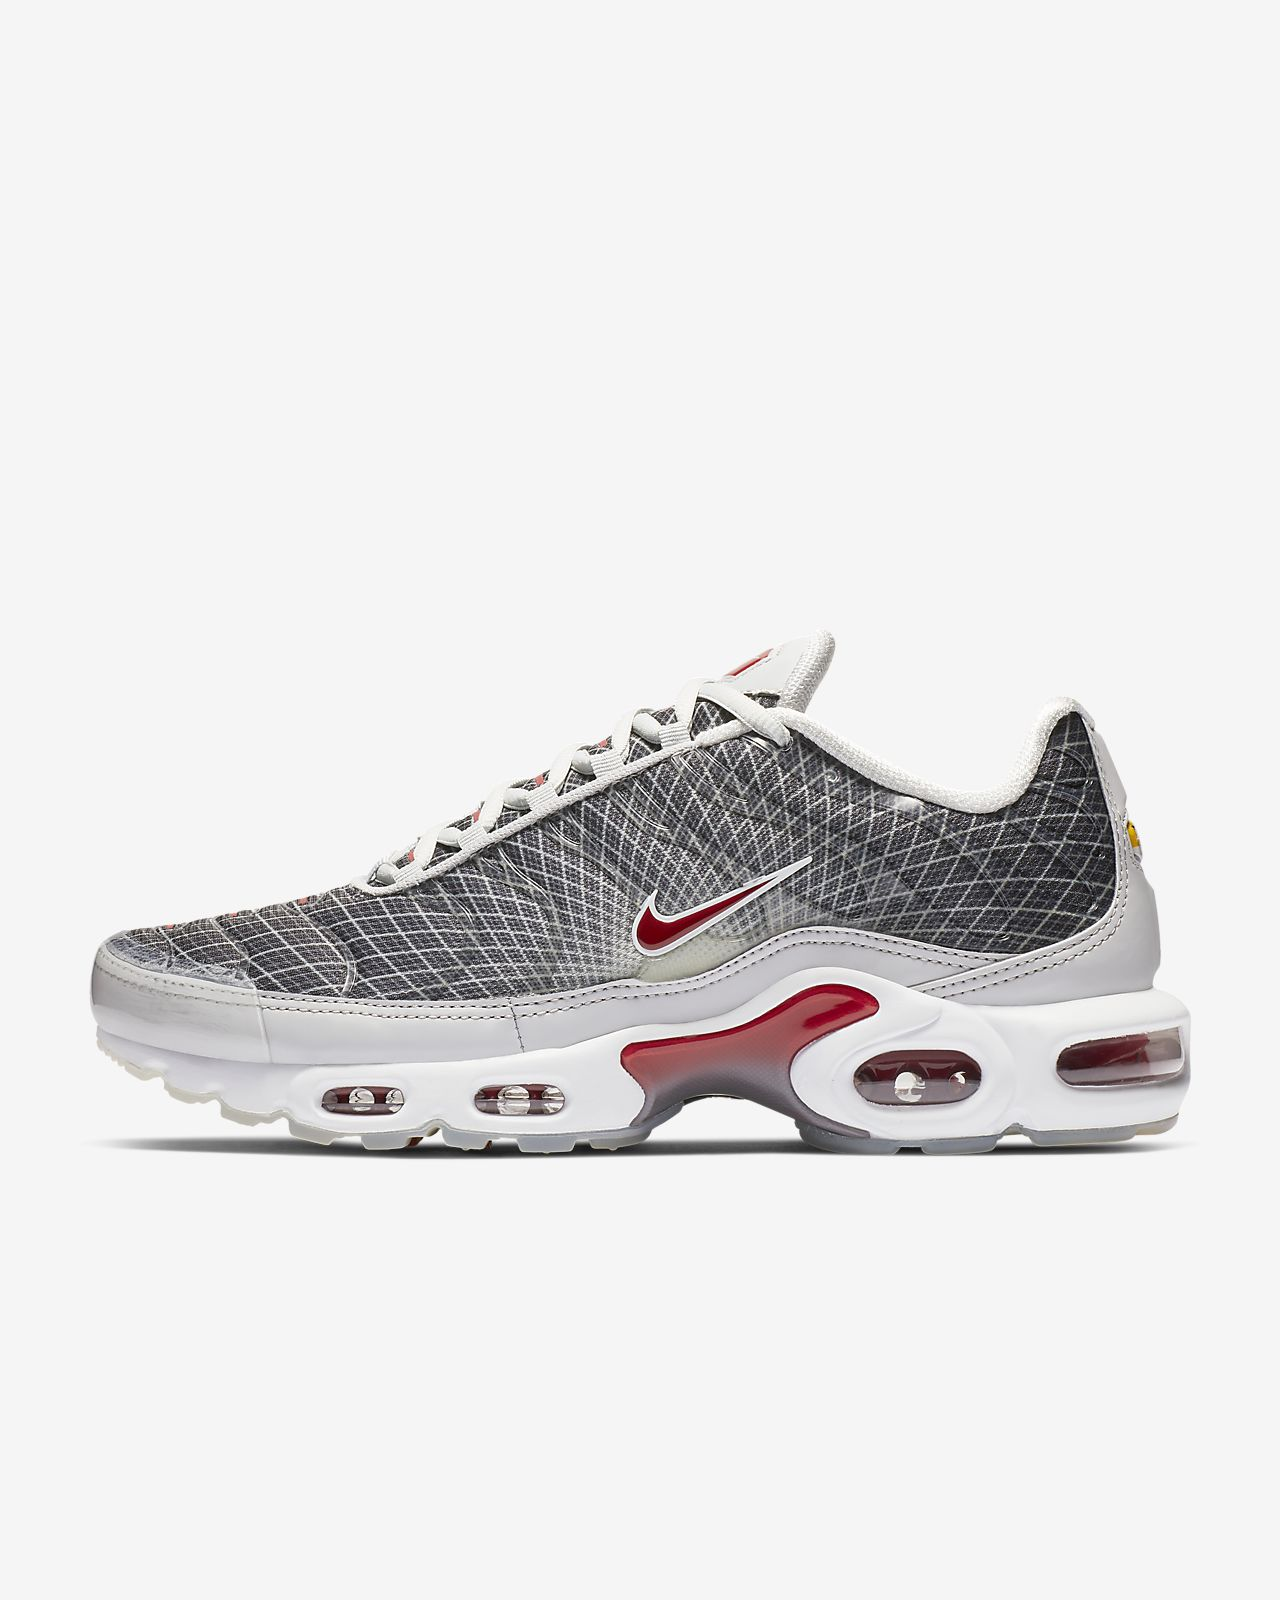 the latest 82bf4 01eeb ... Nike Air Max Plus OG Zapatillas